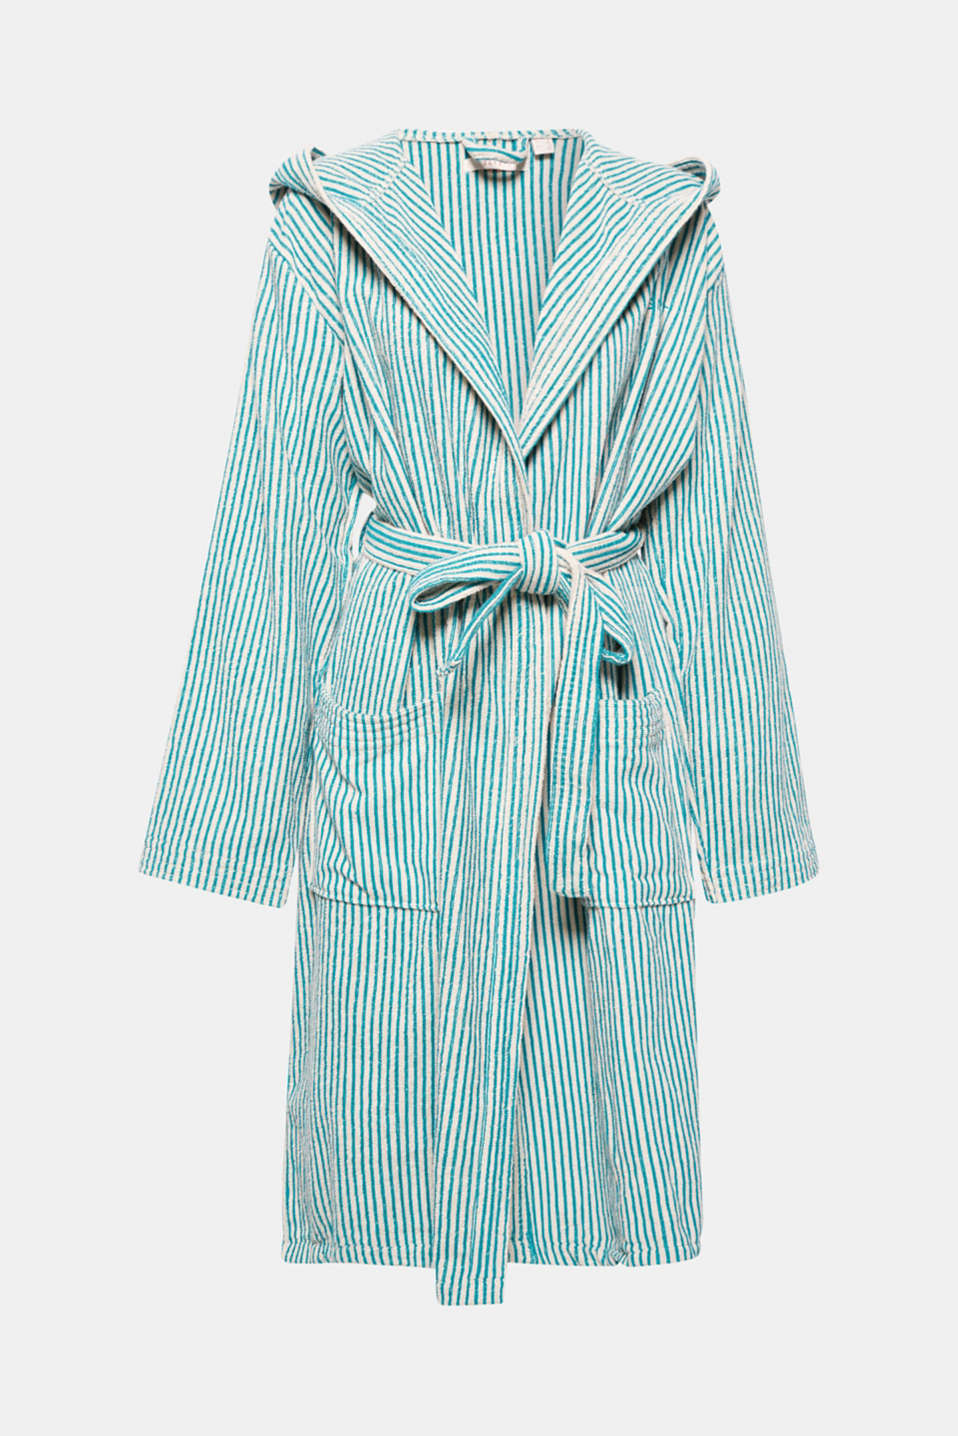 Esprit - Terrycloth bathrobe in 100% cotton